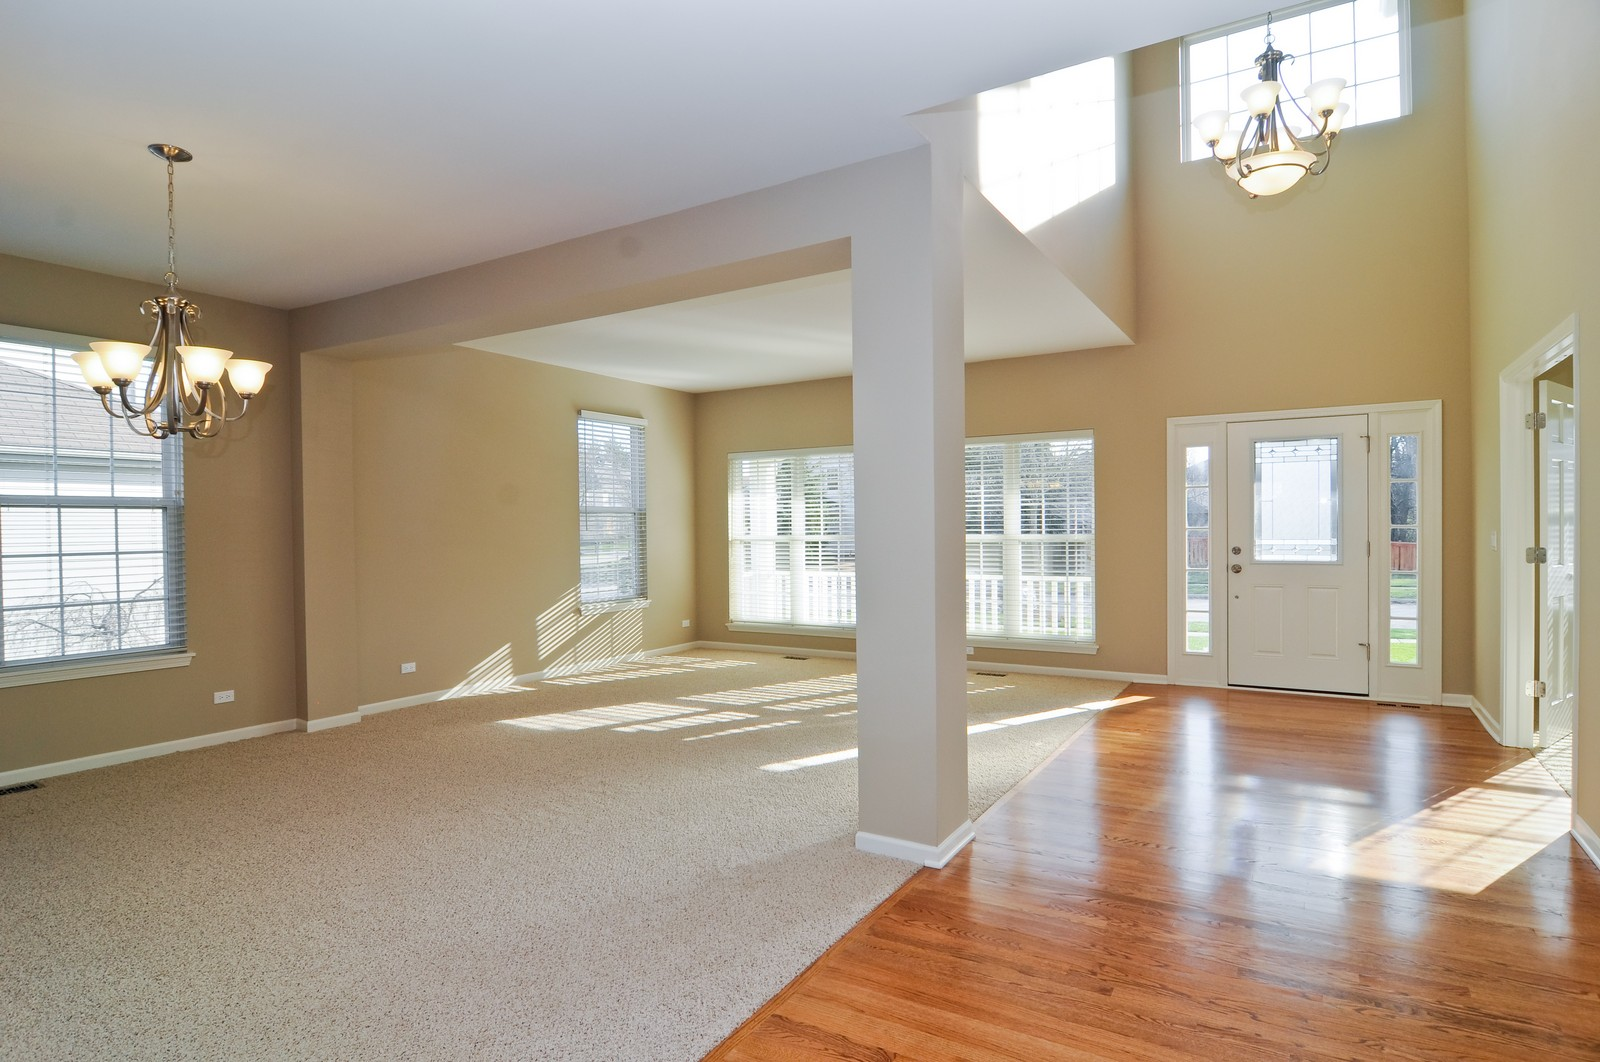 Real Estate Photography - 7394 Brentwood, Gurnee, IL, 60031 - Living Room / Dining Room